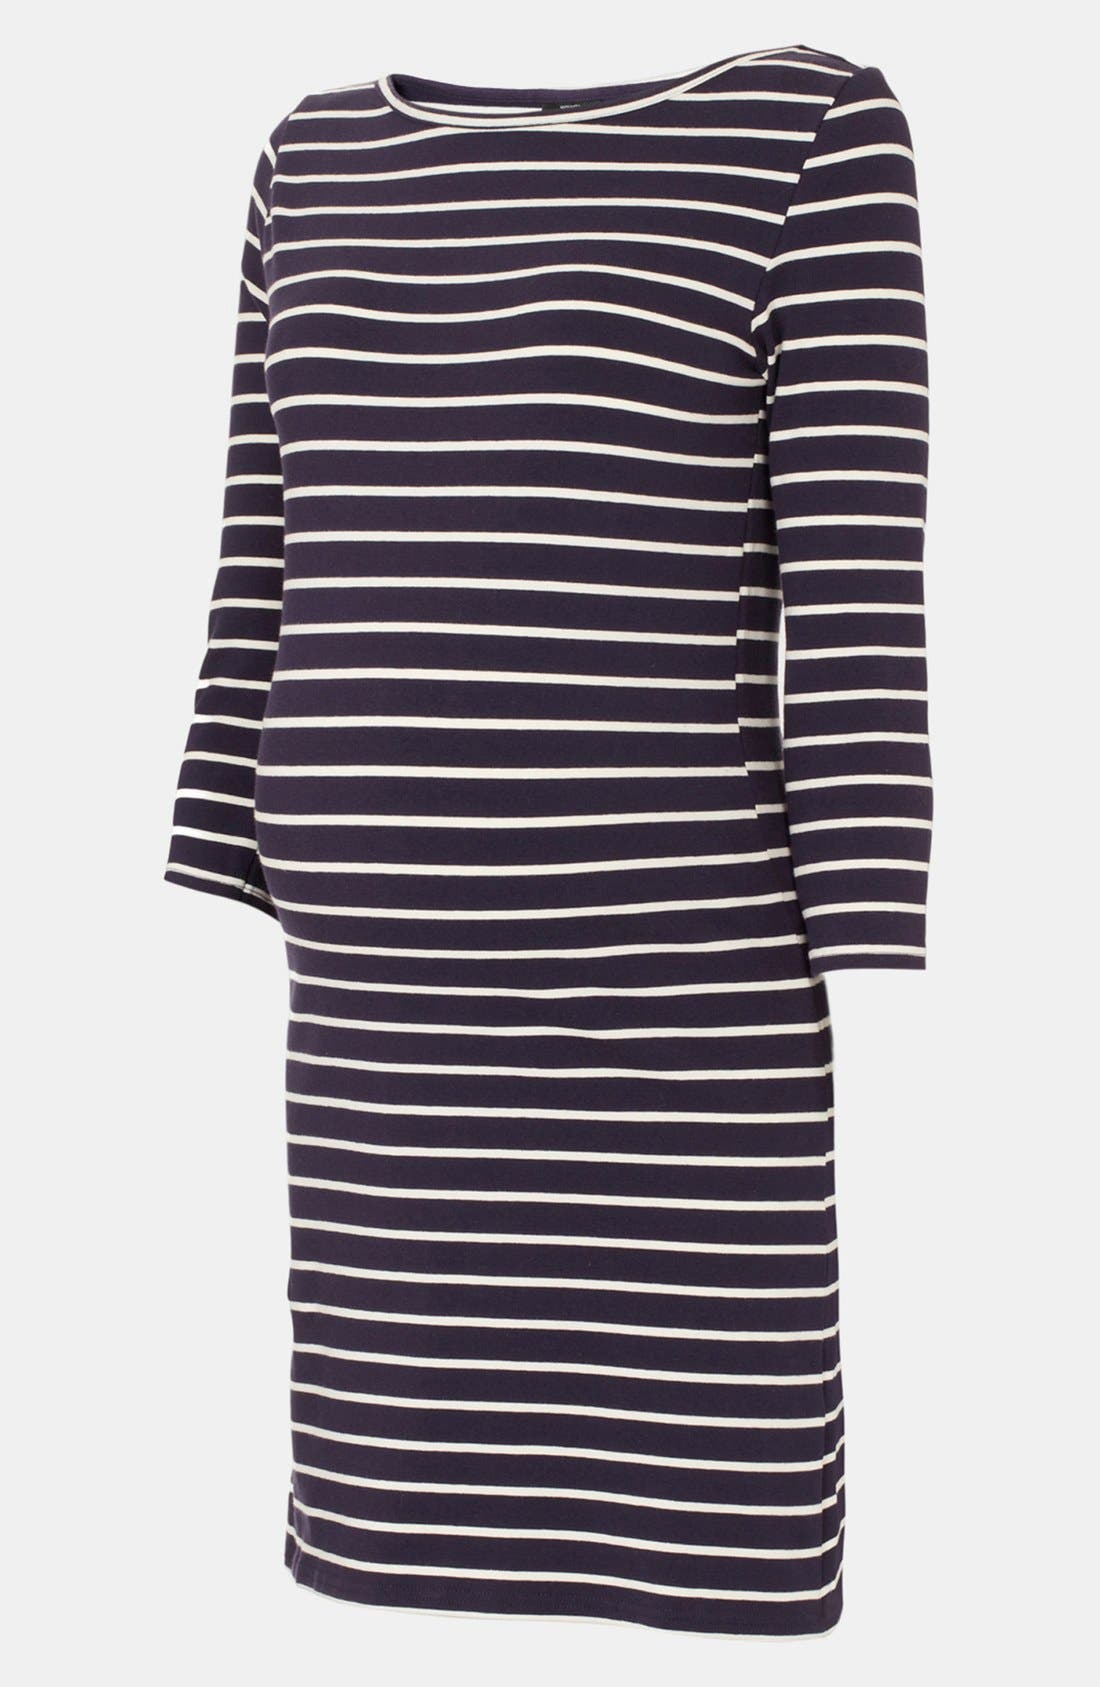 Alternate Image 1 Selected - Topshop Stripe Maternity Tunic Dress